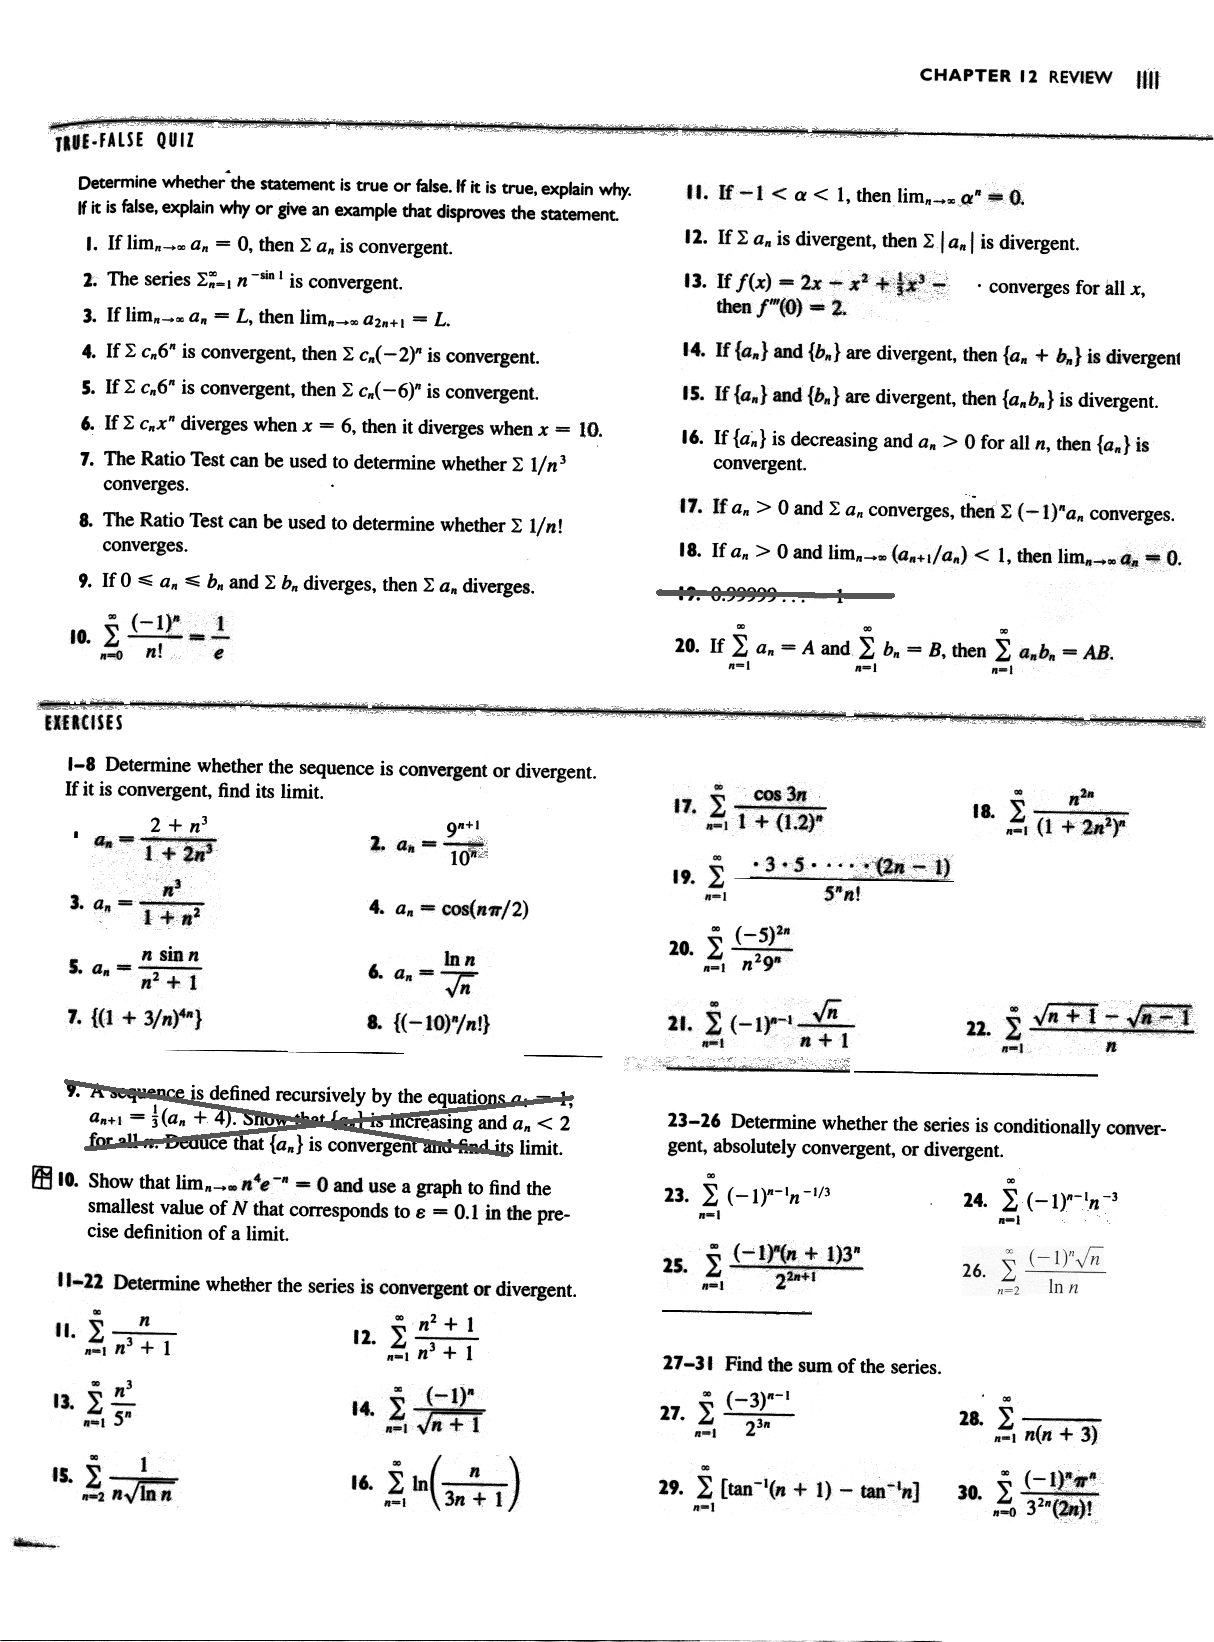 Study Guide 3 Calculus Homework And Study Guide